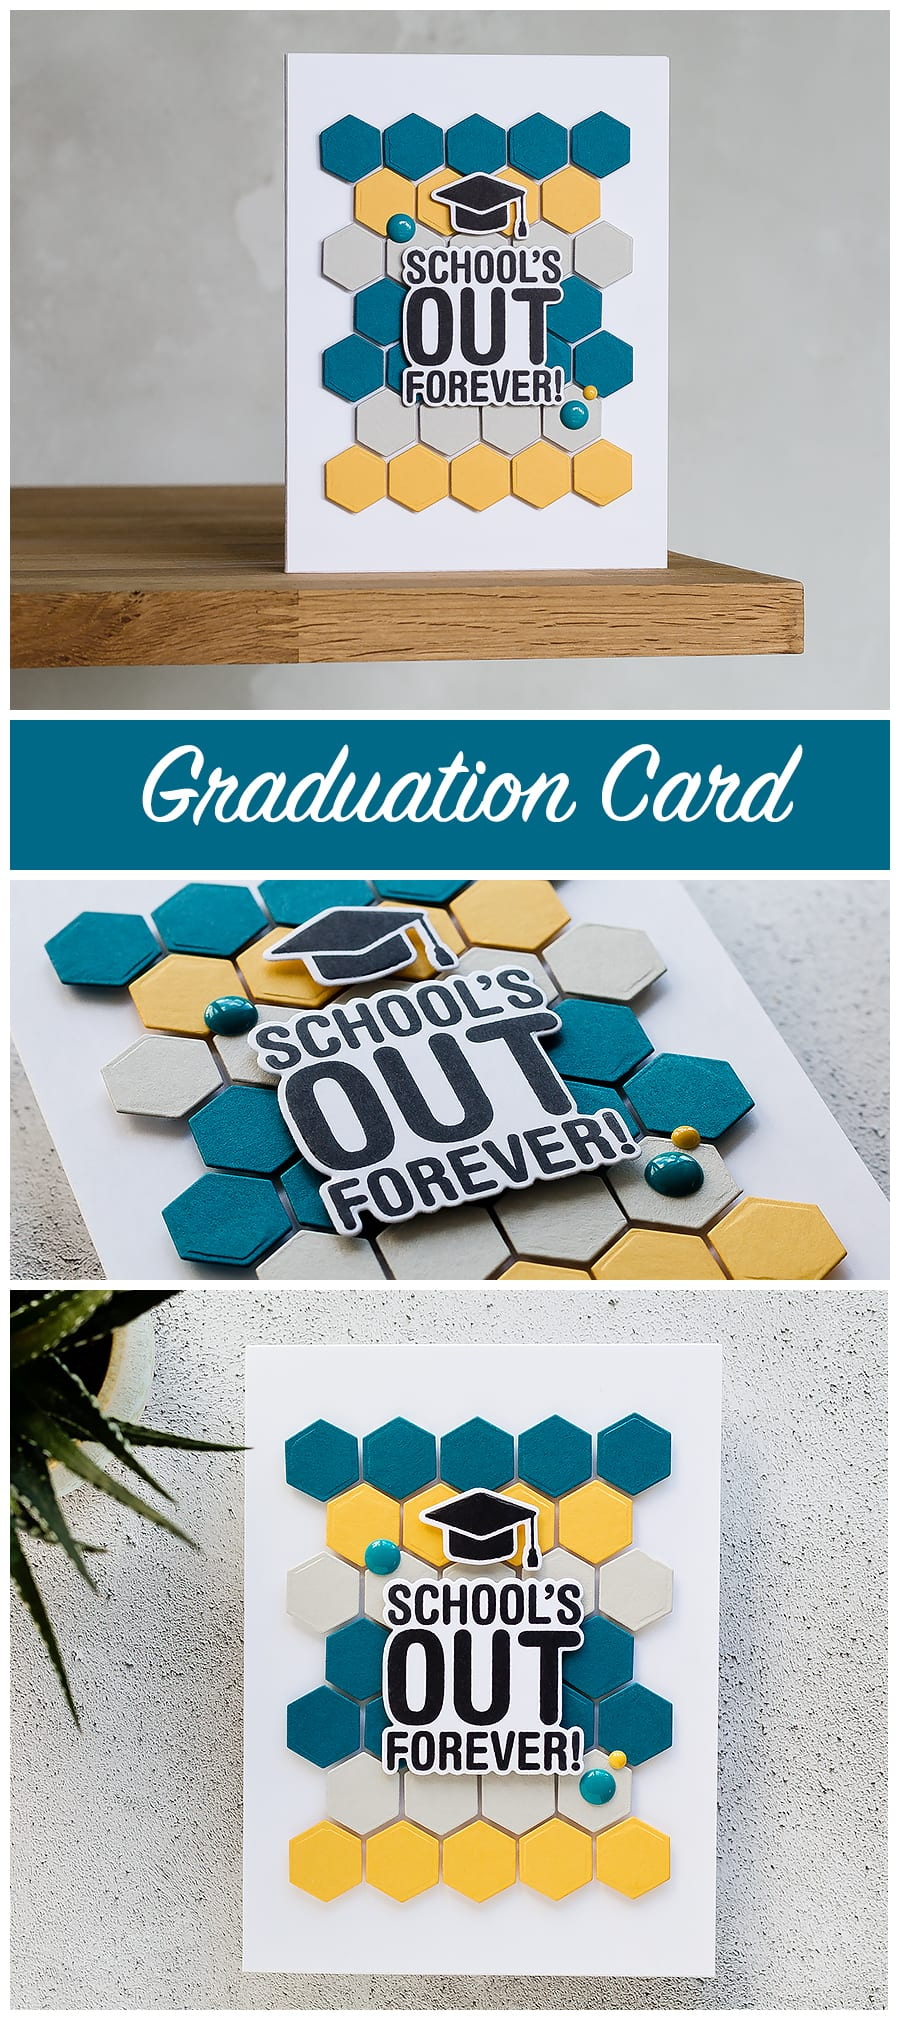 Clean & simple, handmade graduation card by Debby Hughes. Find out more here: https://limedoodledesign.com/2018/04/video-clean-simple-graduation-card-playing-with-colour-repetition/